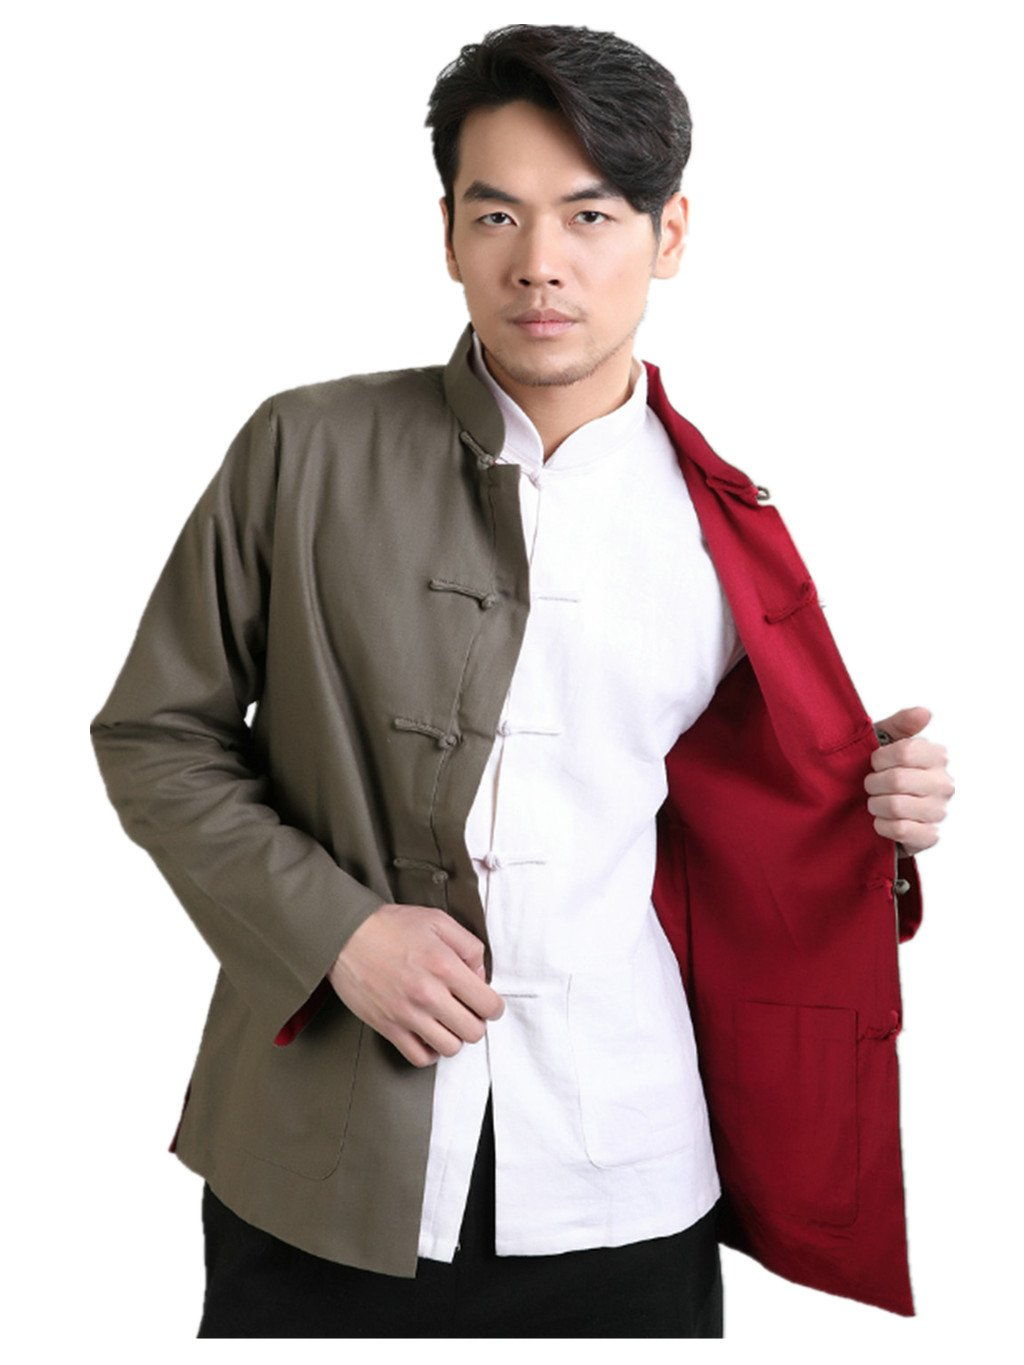 Cotton-flax Tang Suits Double-sided Wear Retro Jackets mens shirts Business Jackets